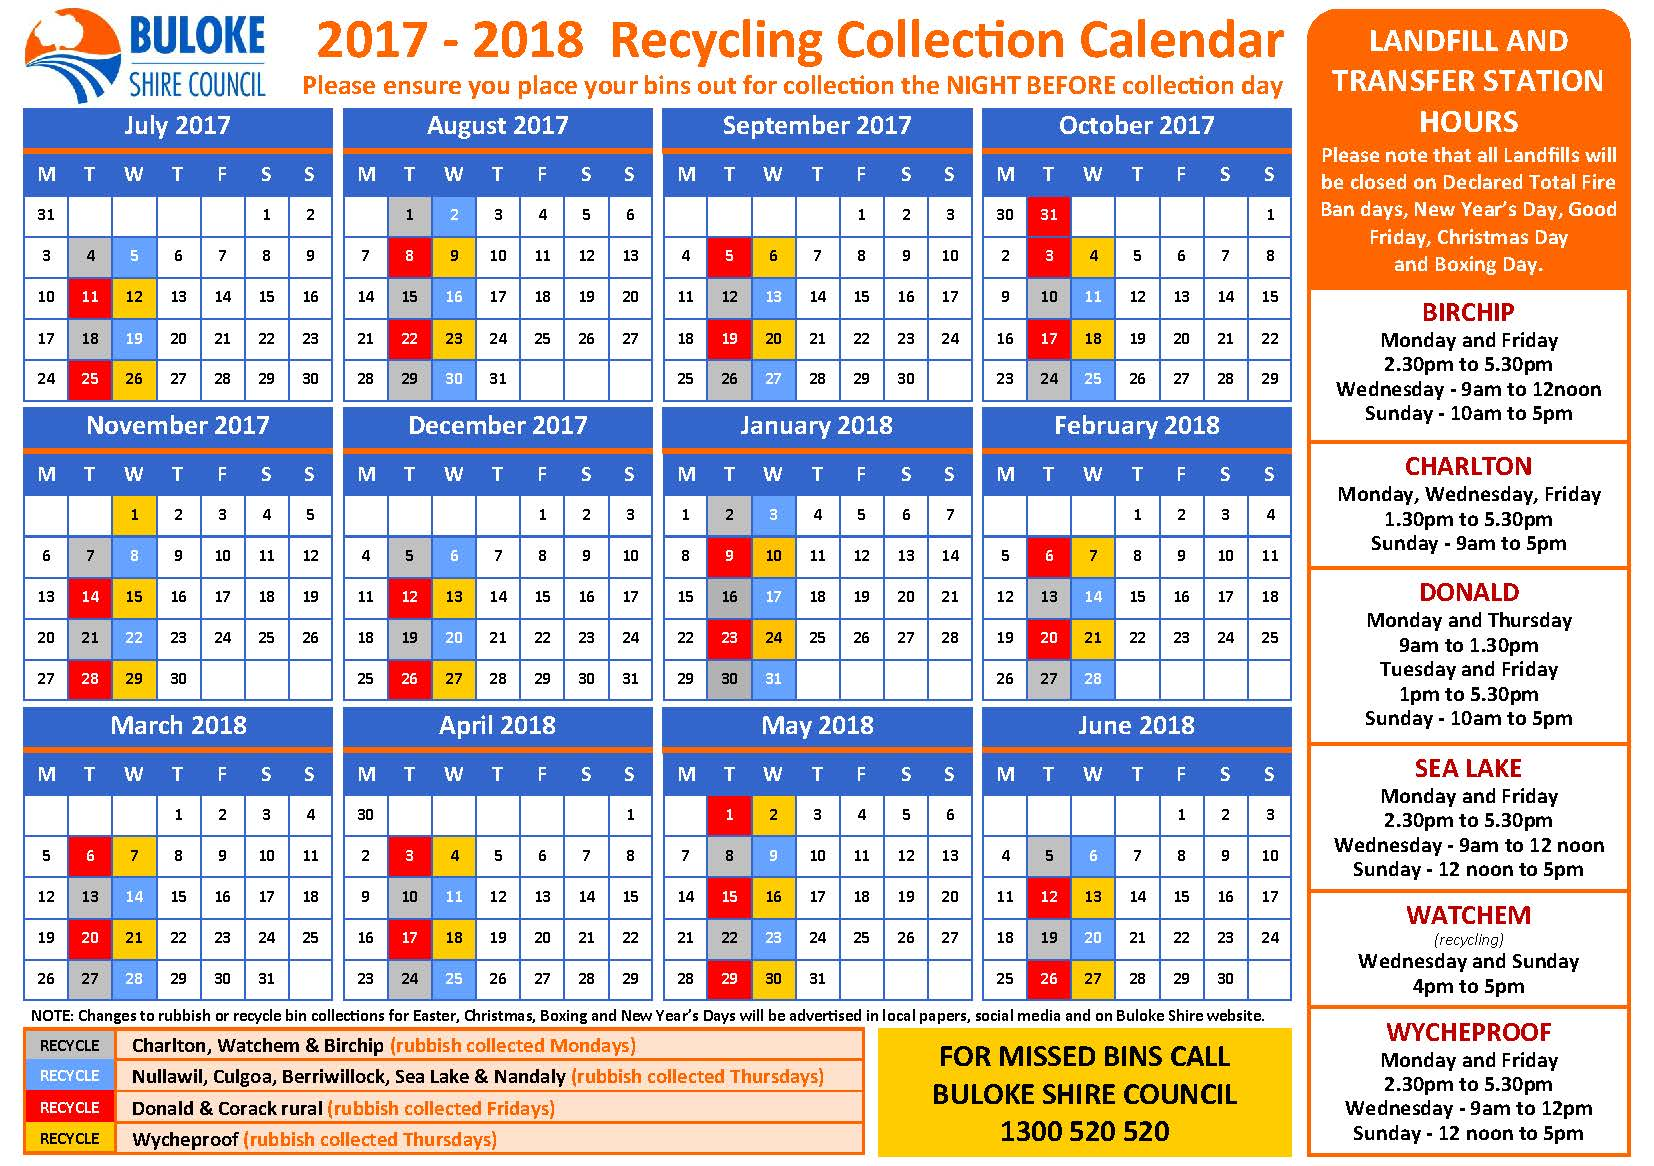 2017-2018 Recycling Collection Calender - FINAL